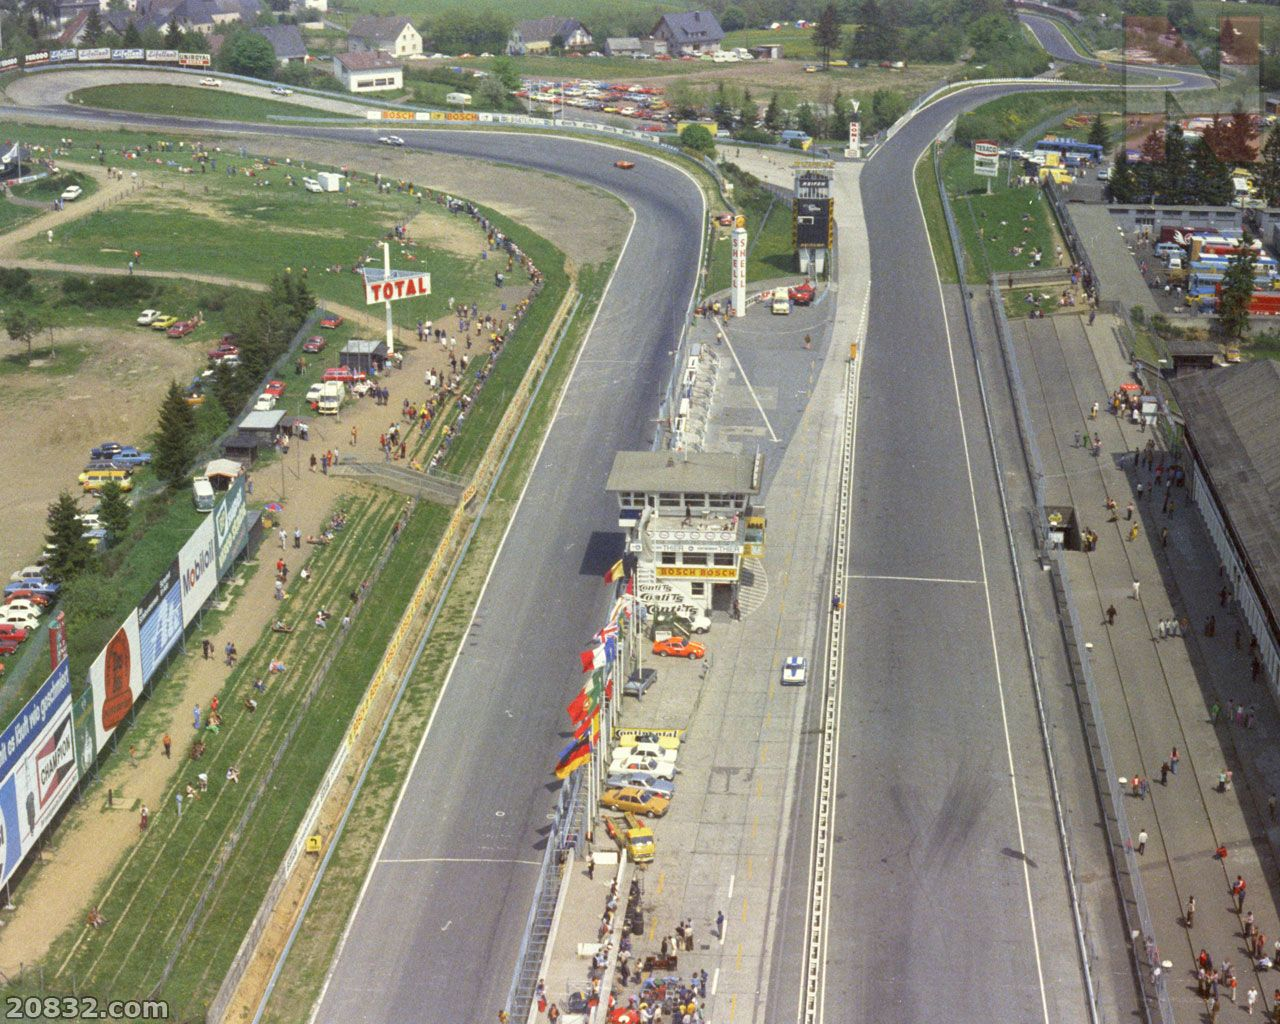 A view on the Start & Finish Area of the Nürburgring sometime in the early 70s